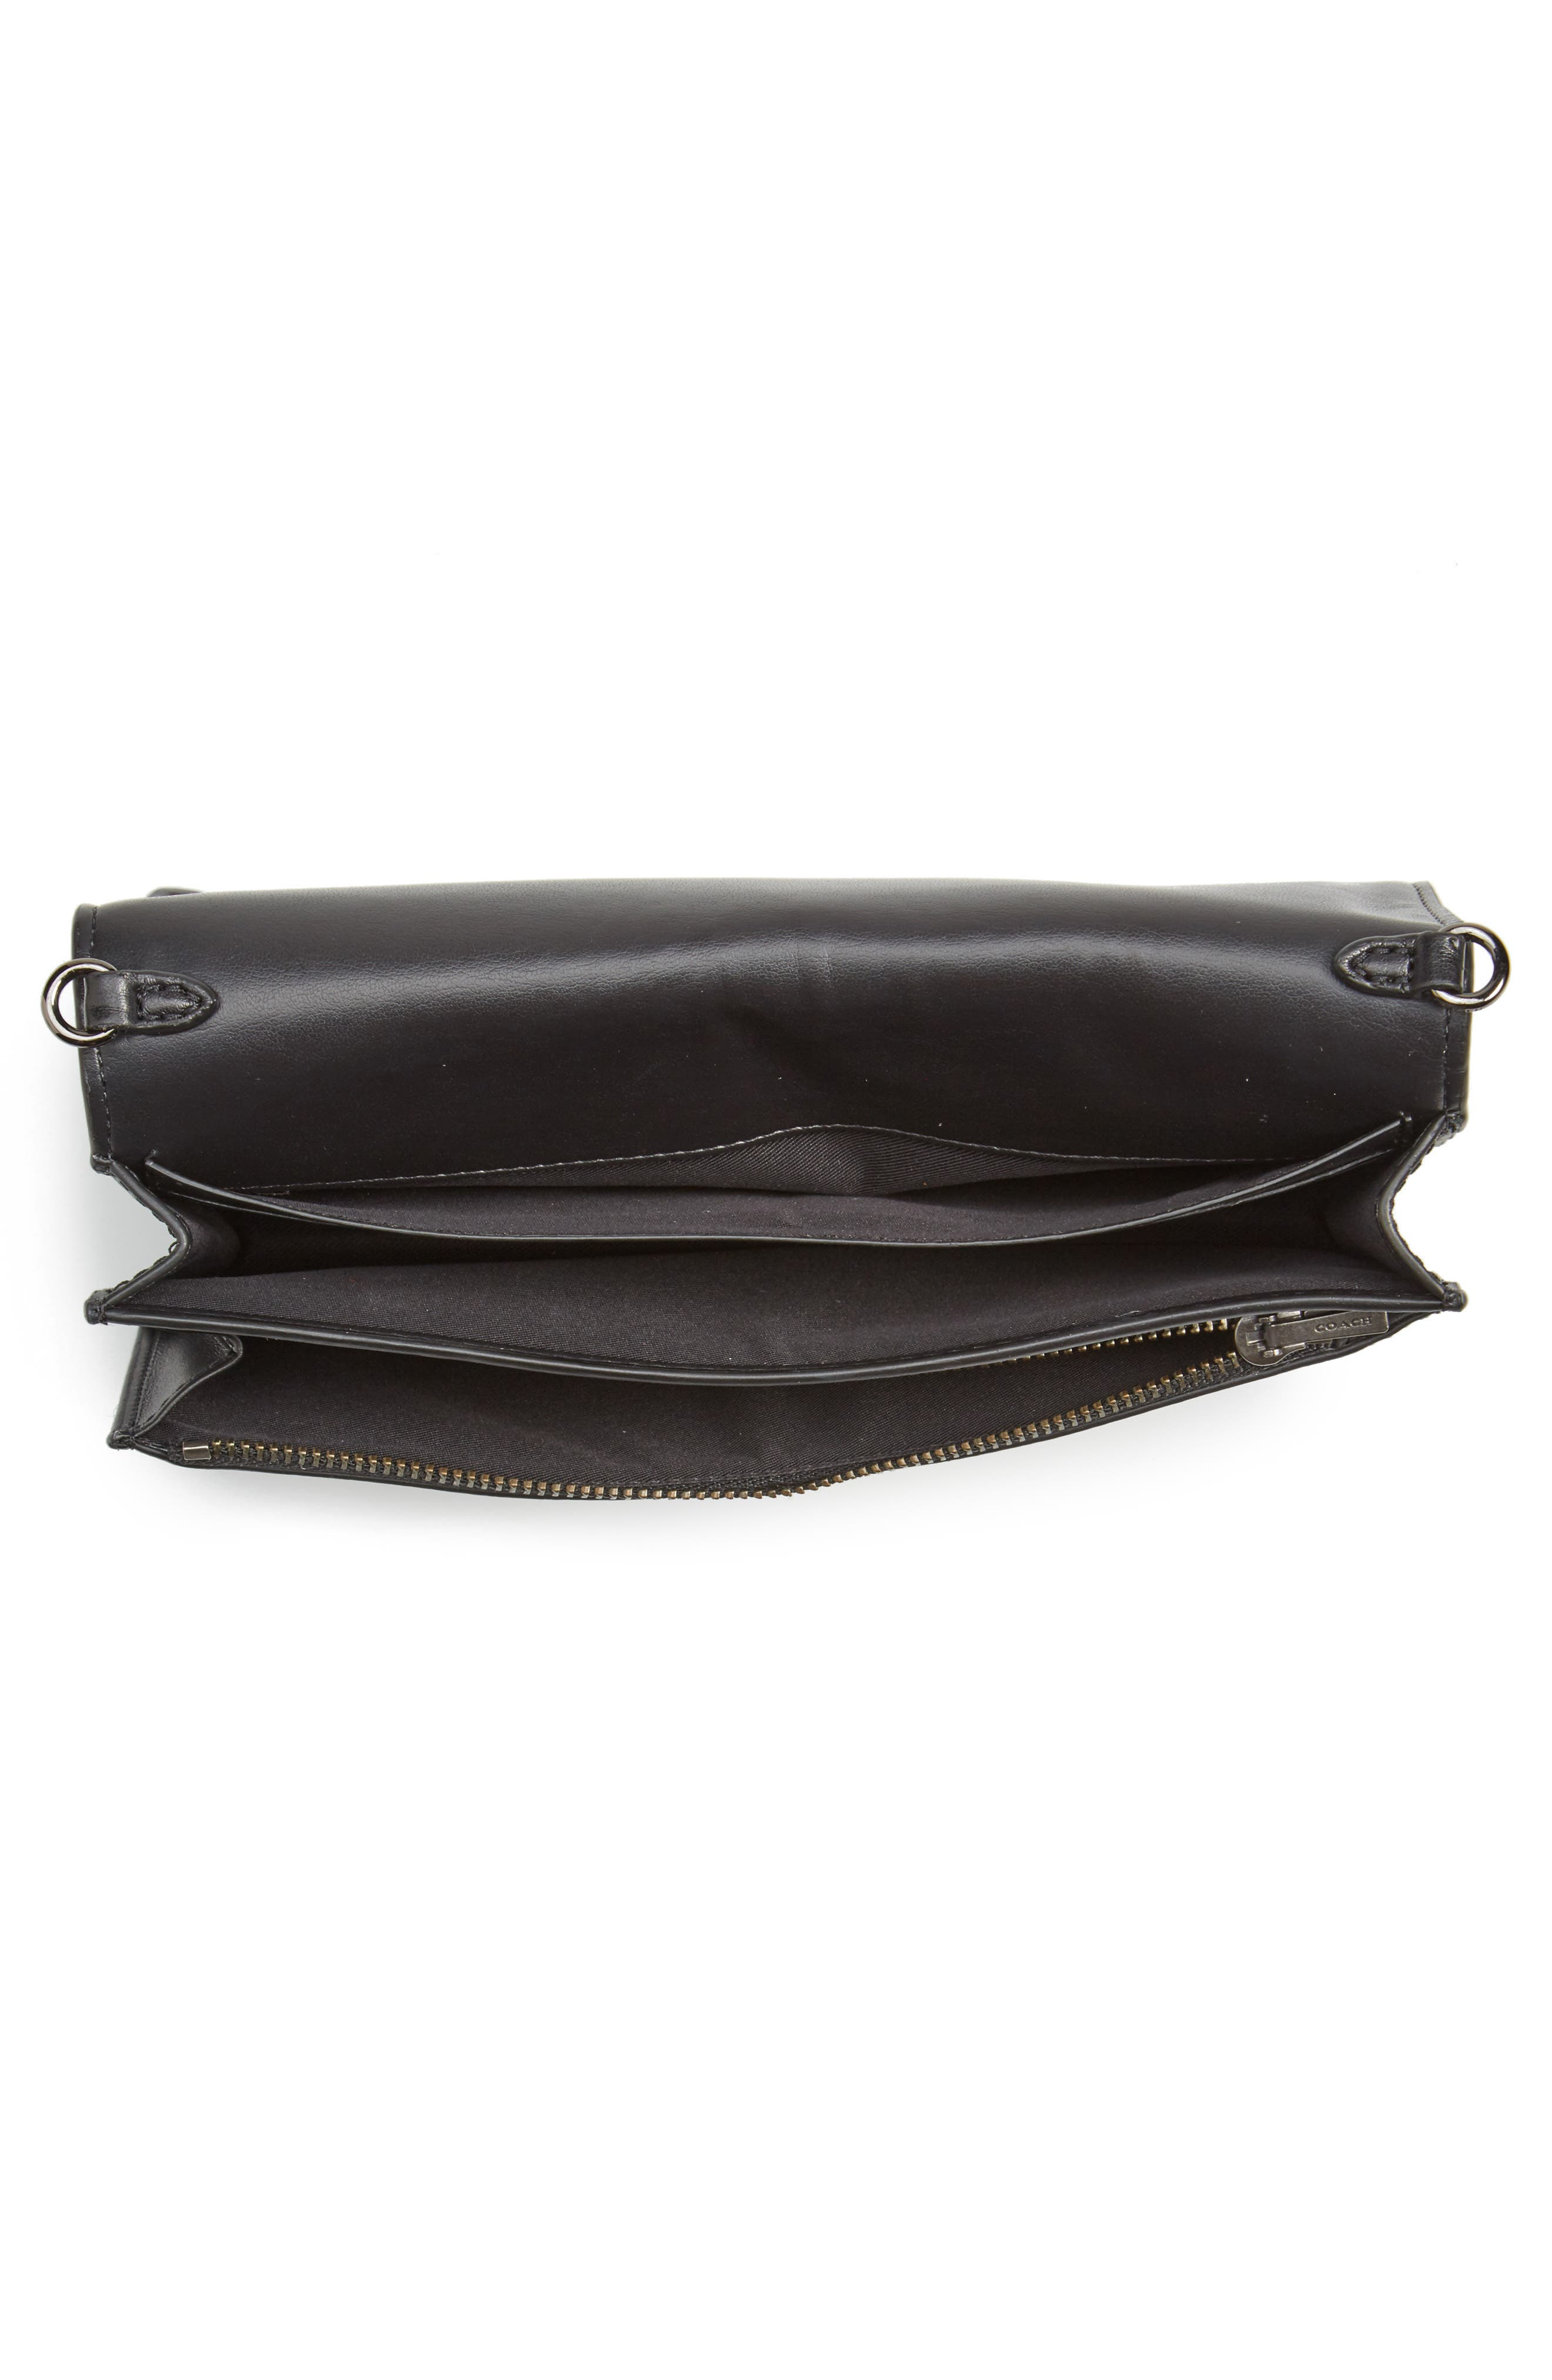 Calfskin Leather Foldover Convertible Clutch,                             Alternate thumbnail 4, color,                             009